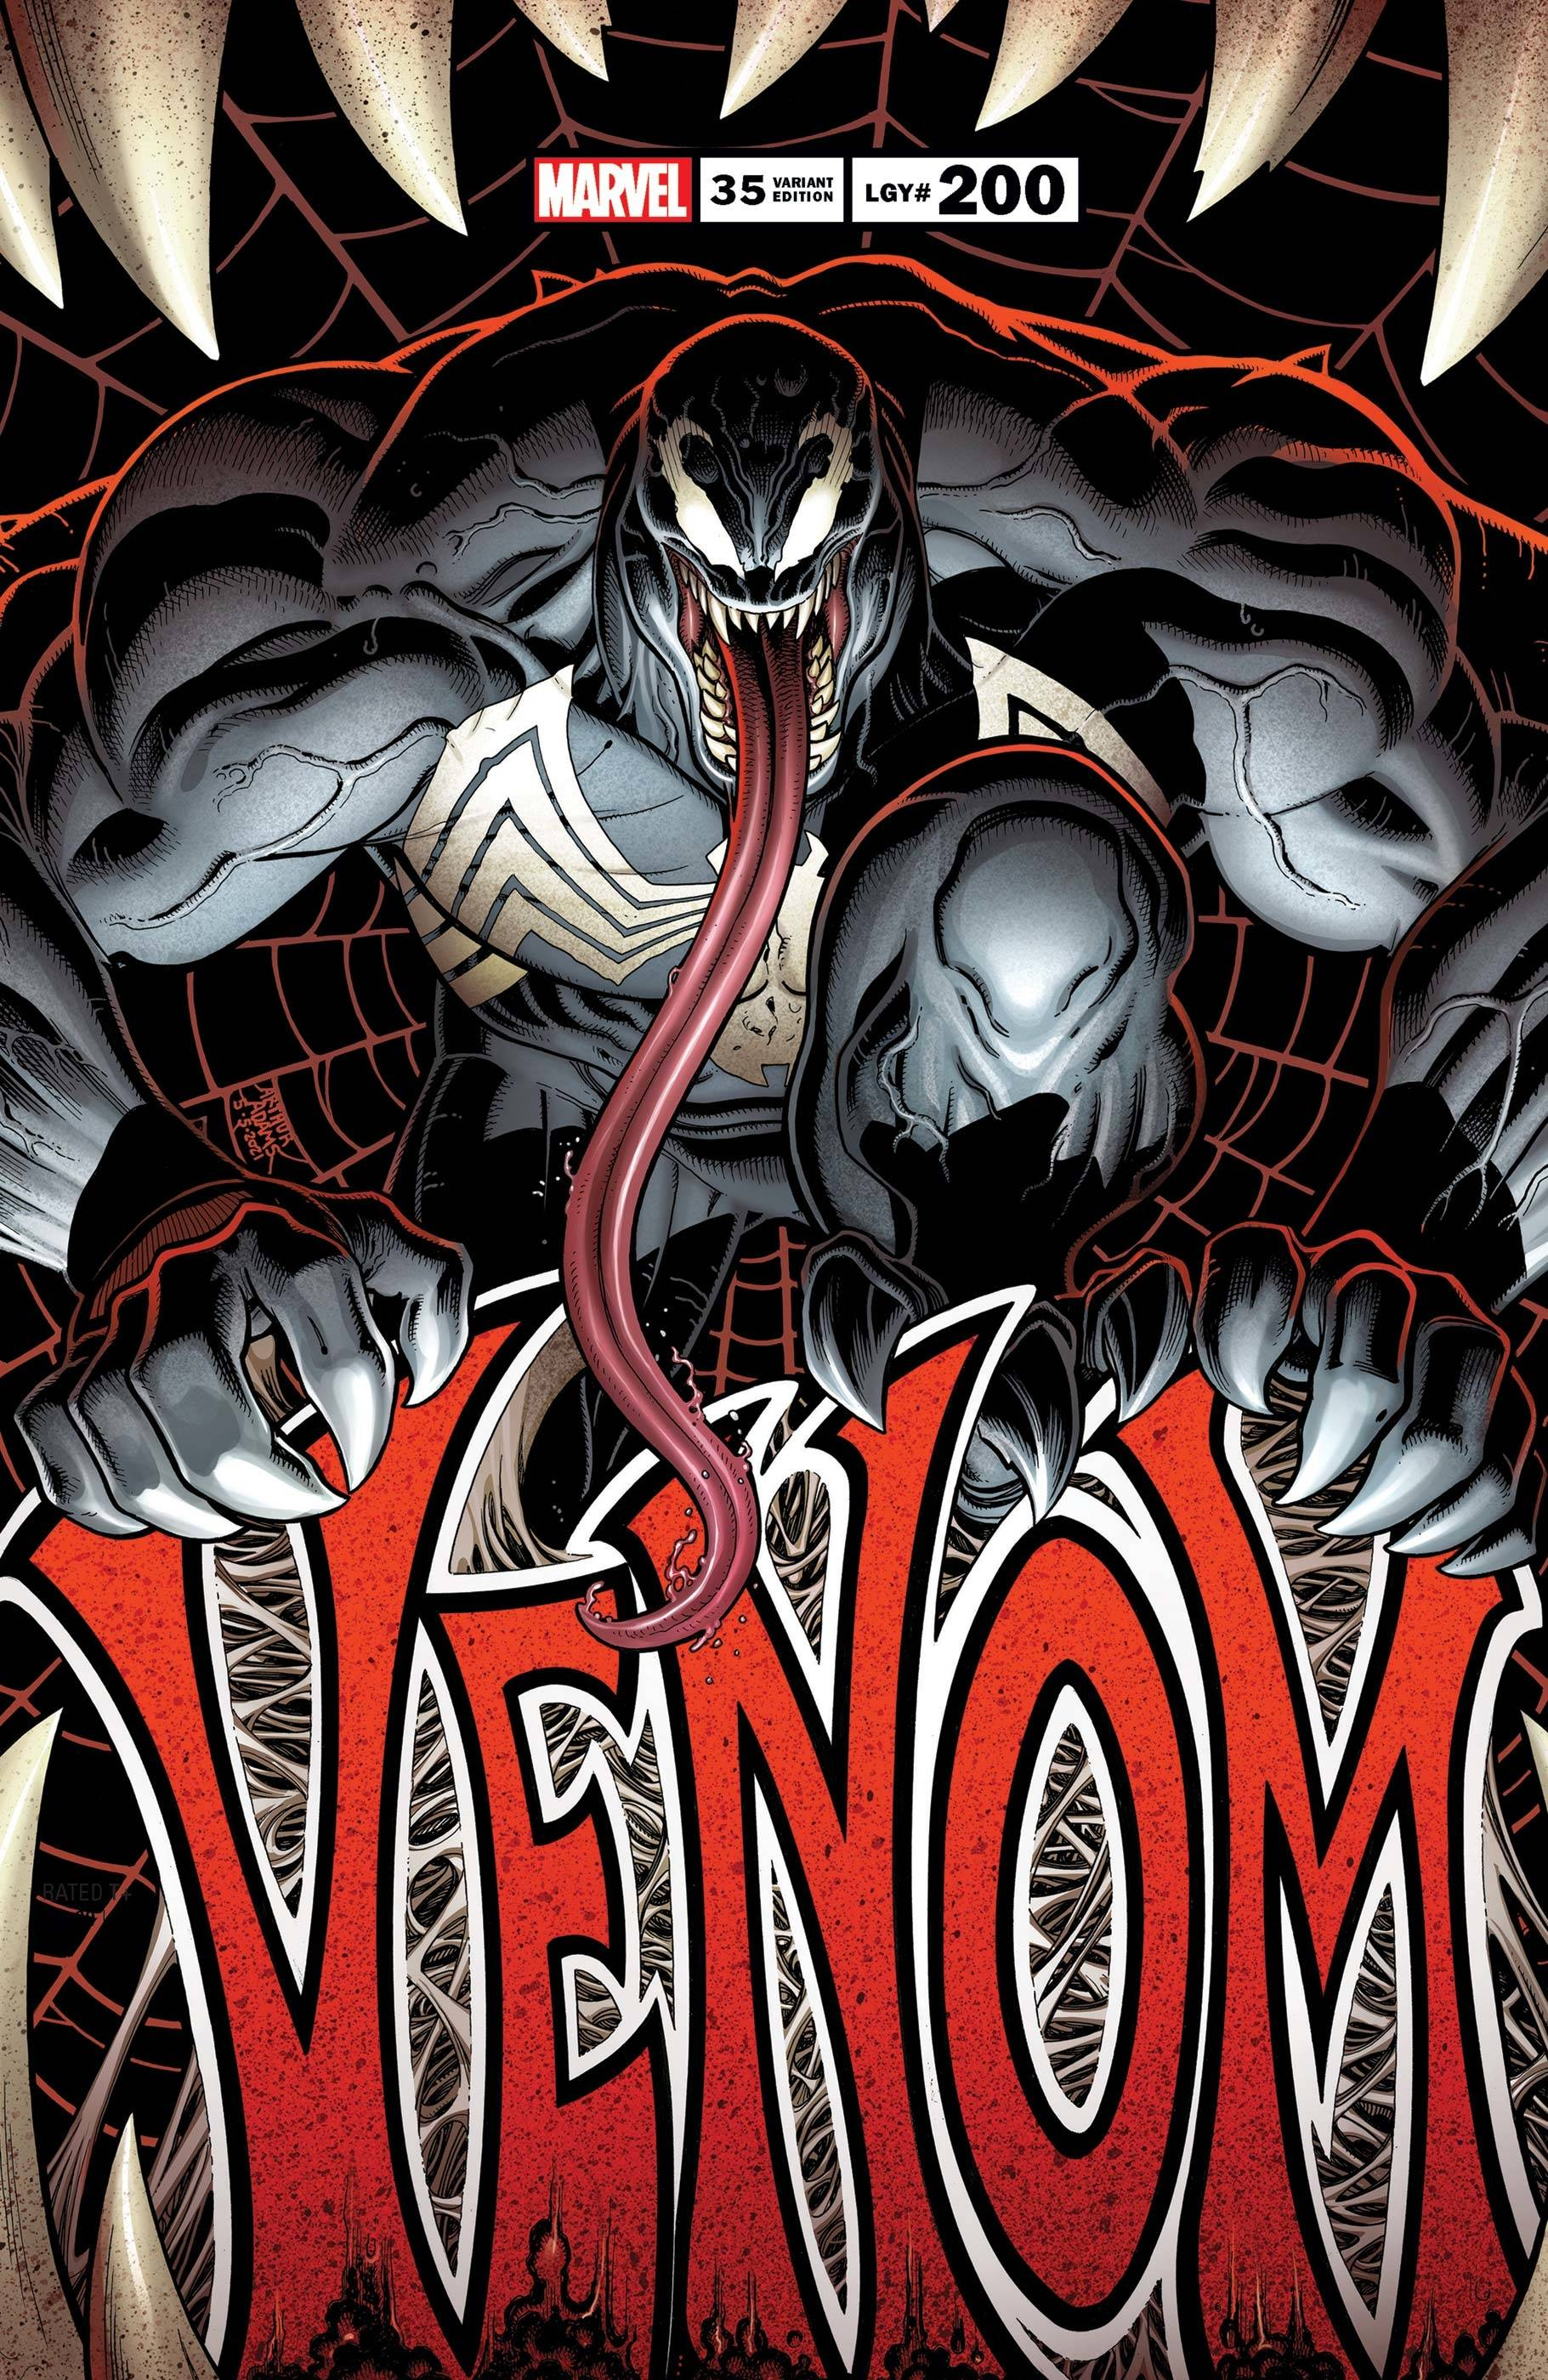 VENOM #35 ART ADAMS VAR 200TH ISSUE